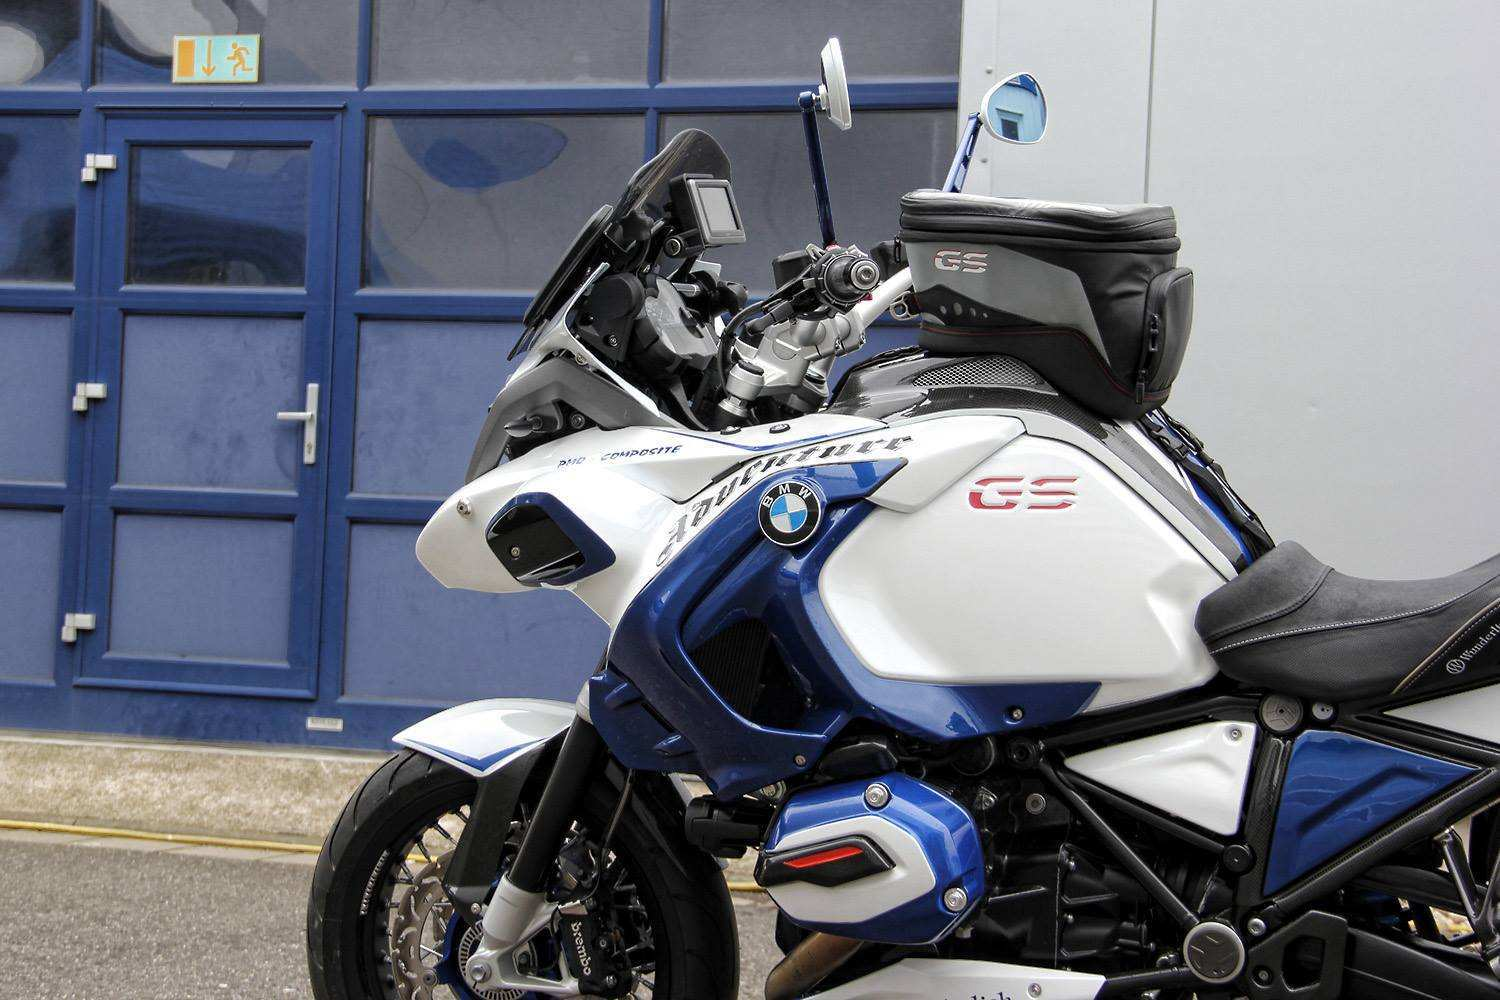 73 New 2020 Bmw R1200Gs Price and Review with 2020 Bmw R1200Gs